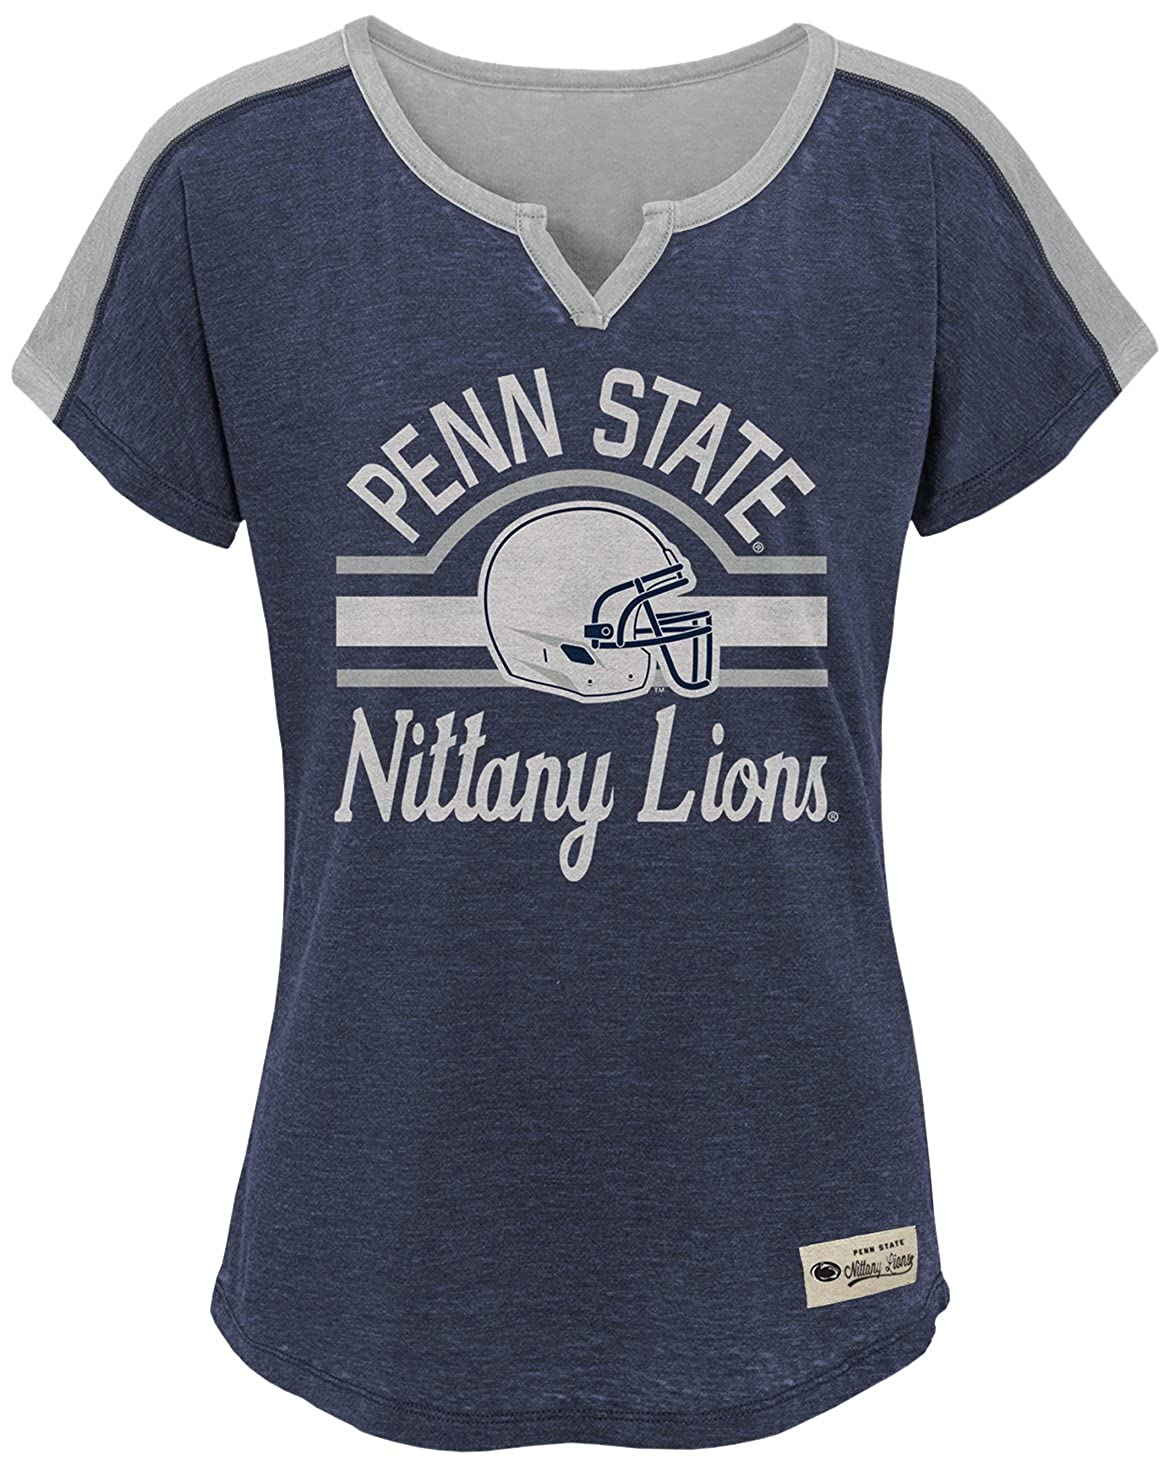 Youth Large 14 NCAA by Outerstuff NCAA Penn State Nittany Lions Youth Girls Tribute Raglan Football Tee Dark Navy